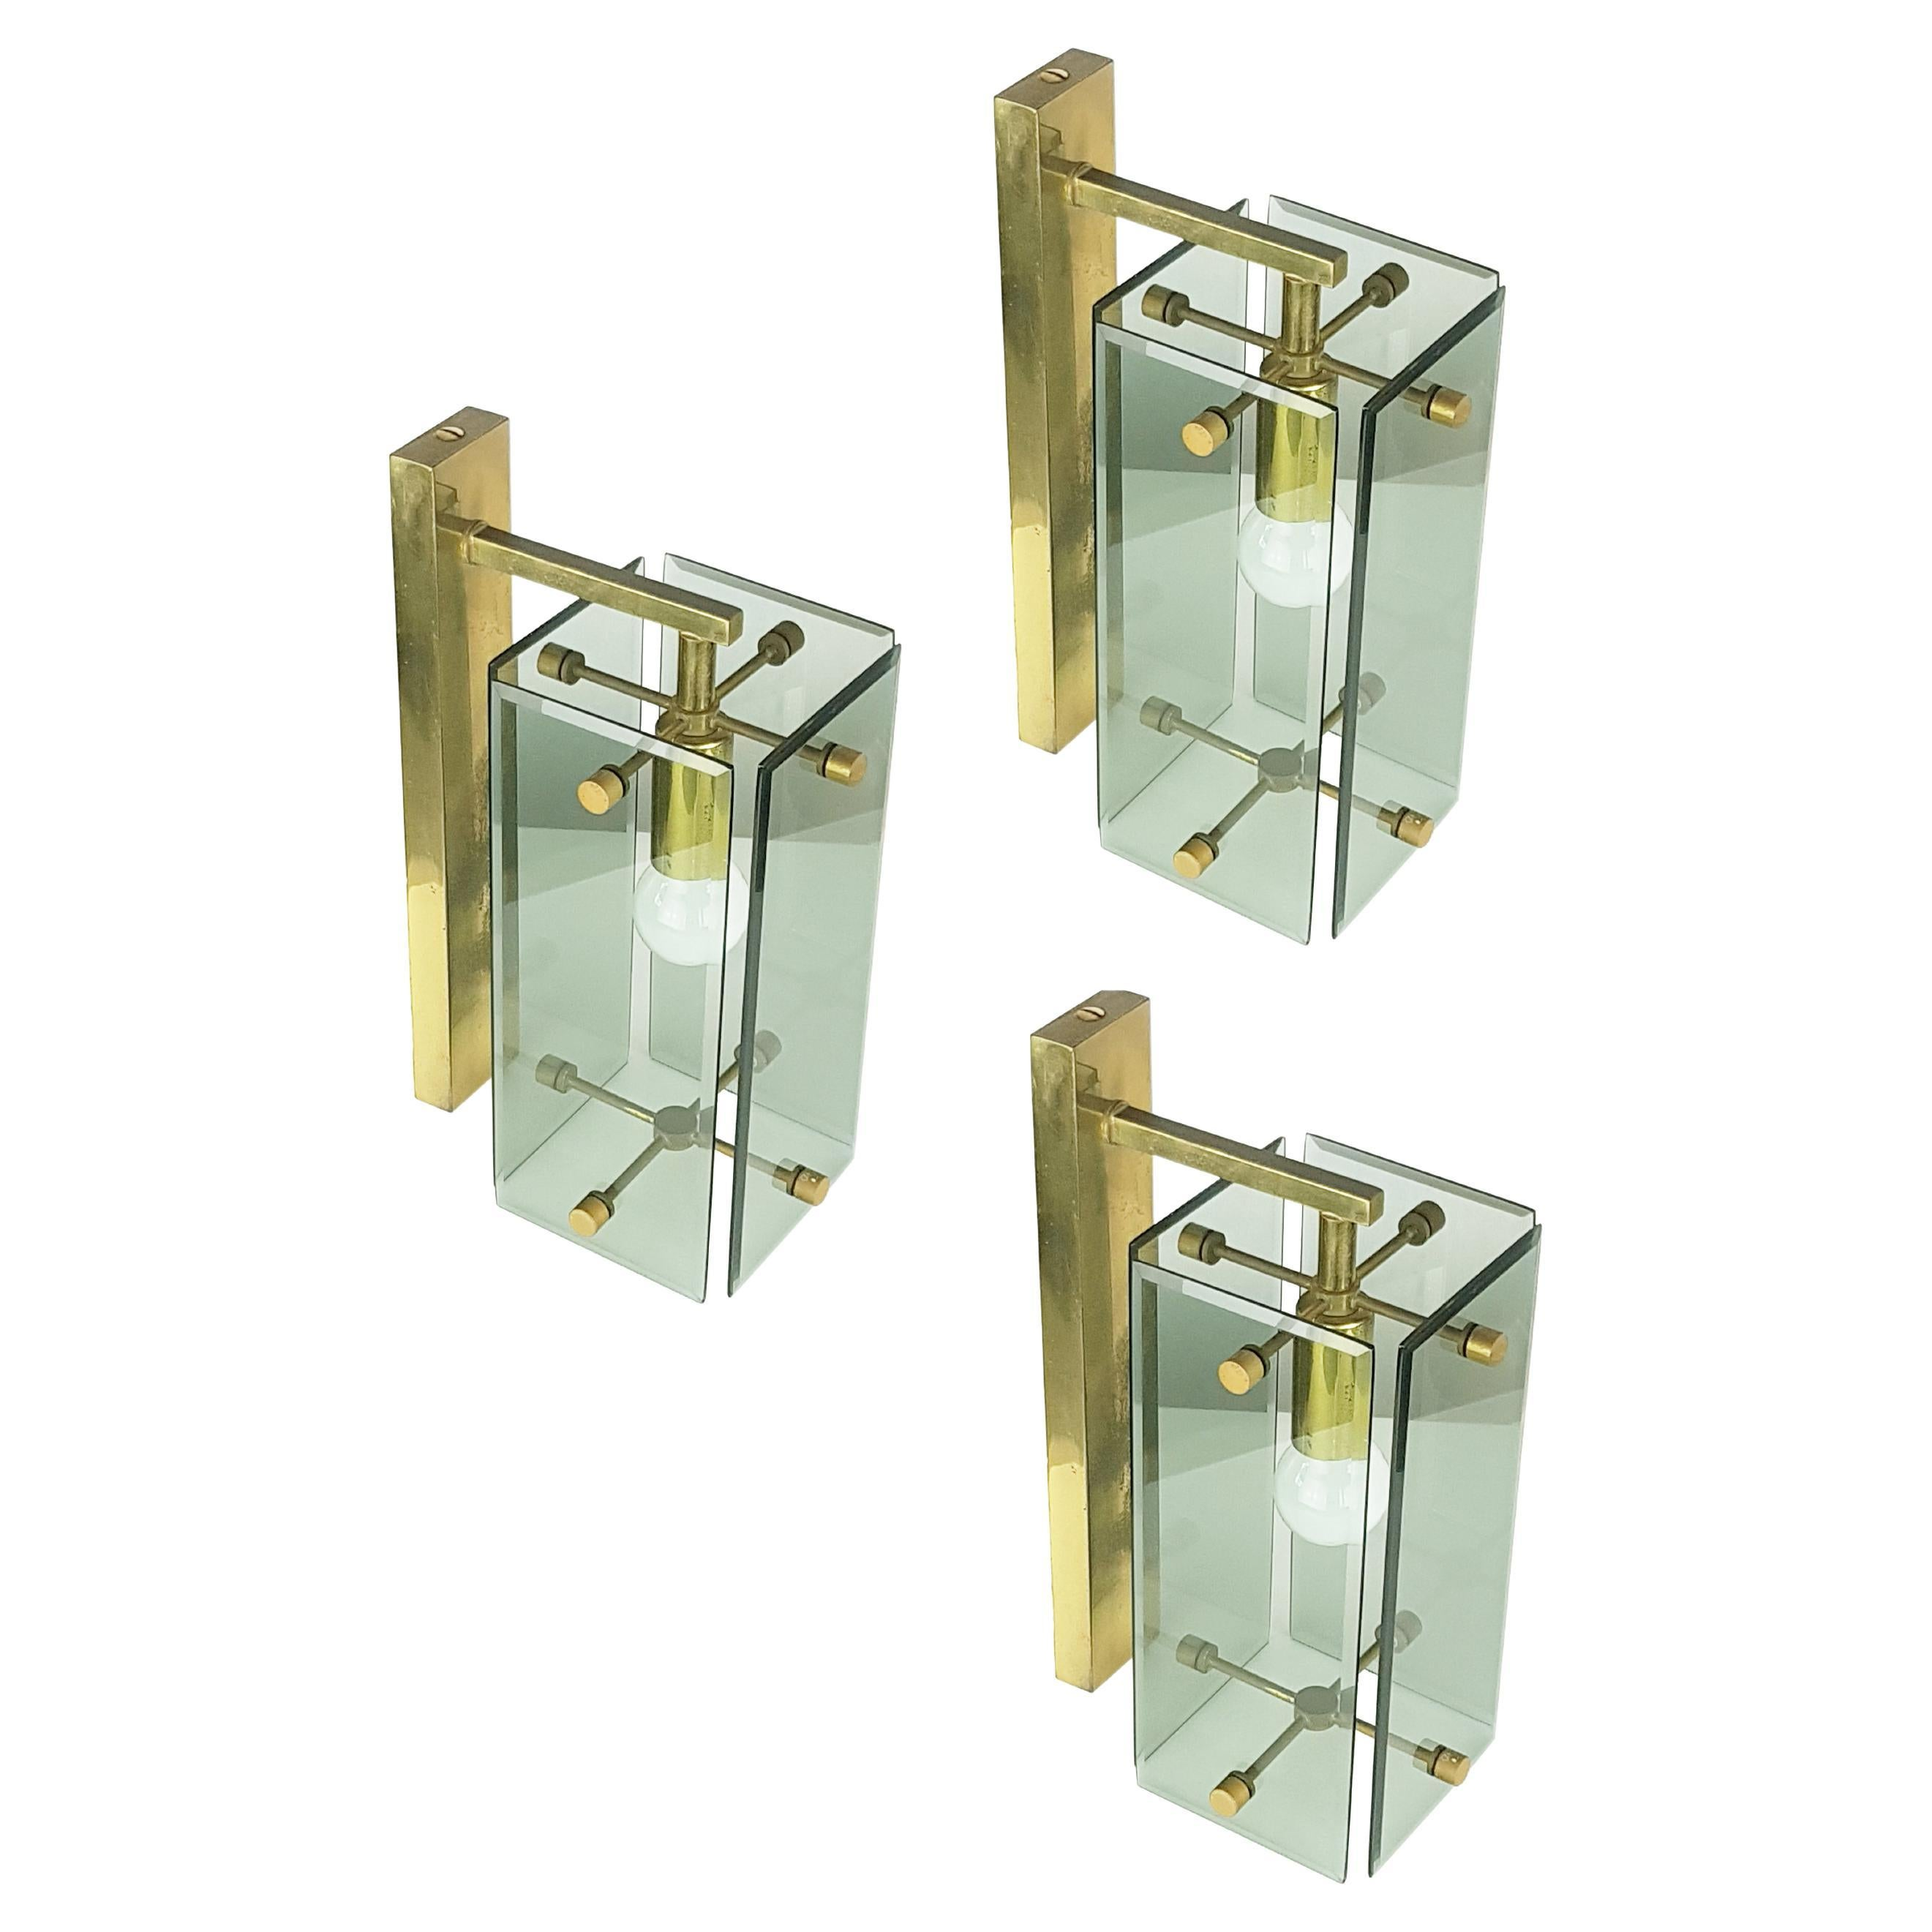 Italian Smoked Glass and Brass Wall Sconces from Cristal Art, set of 3